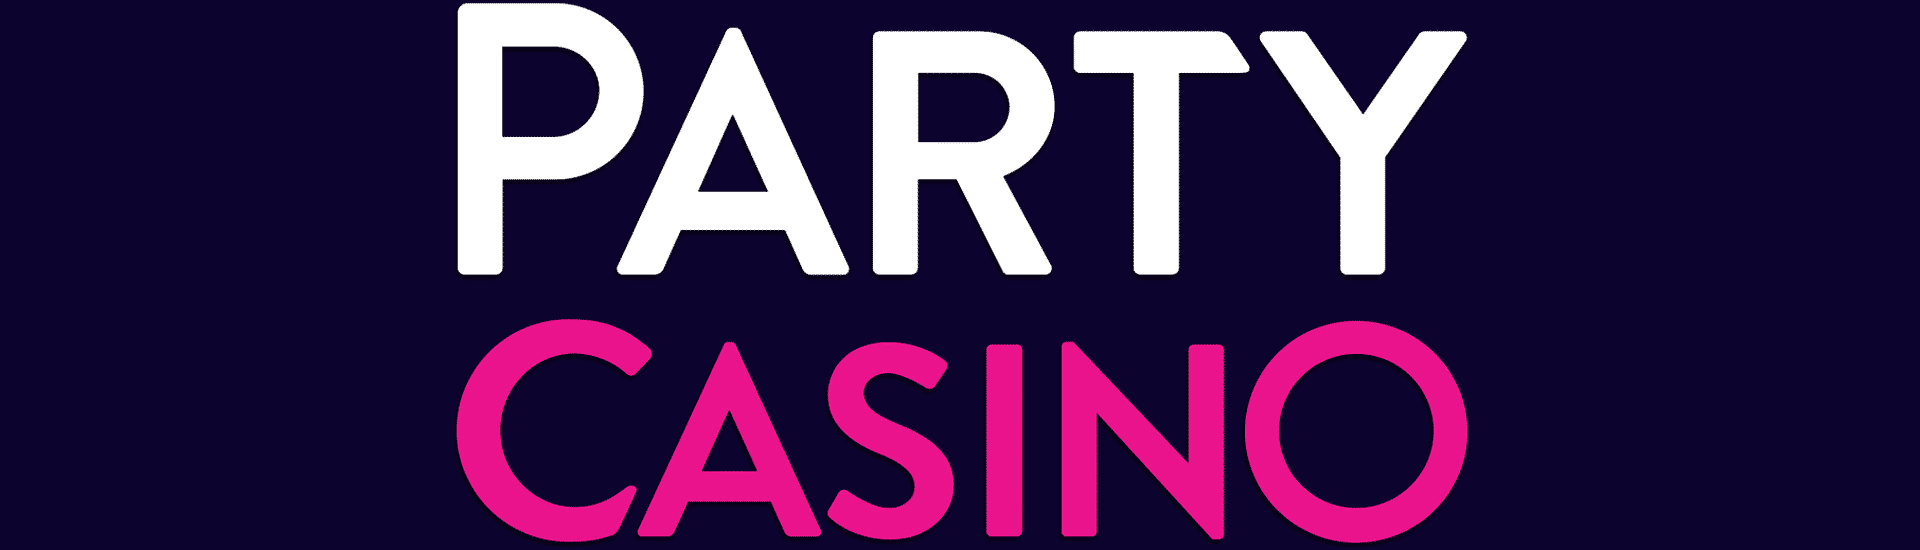 PartyCasino Featured Image